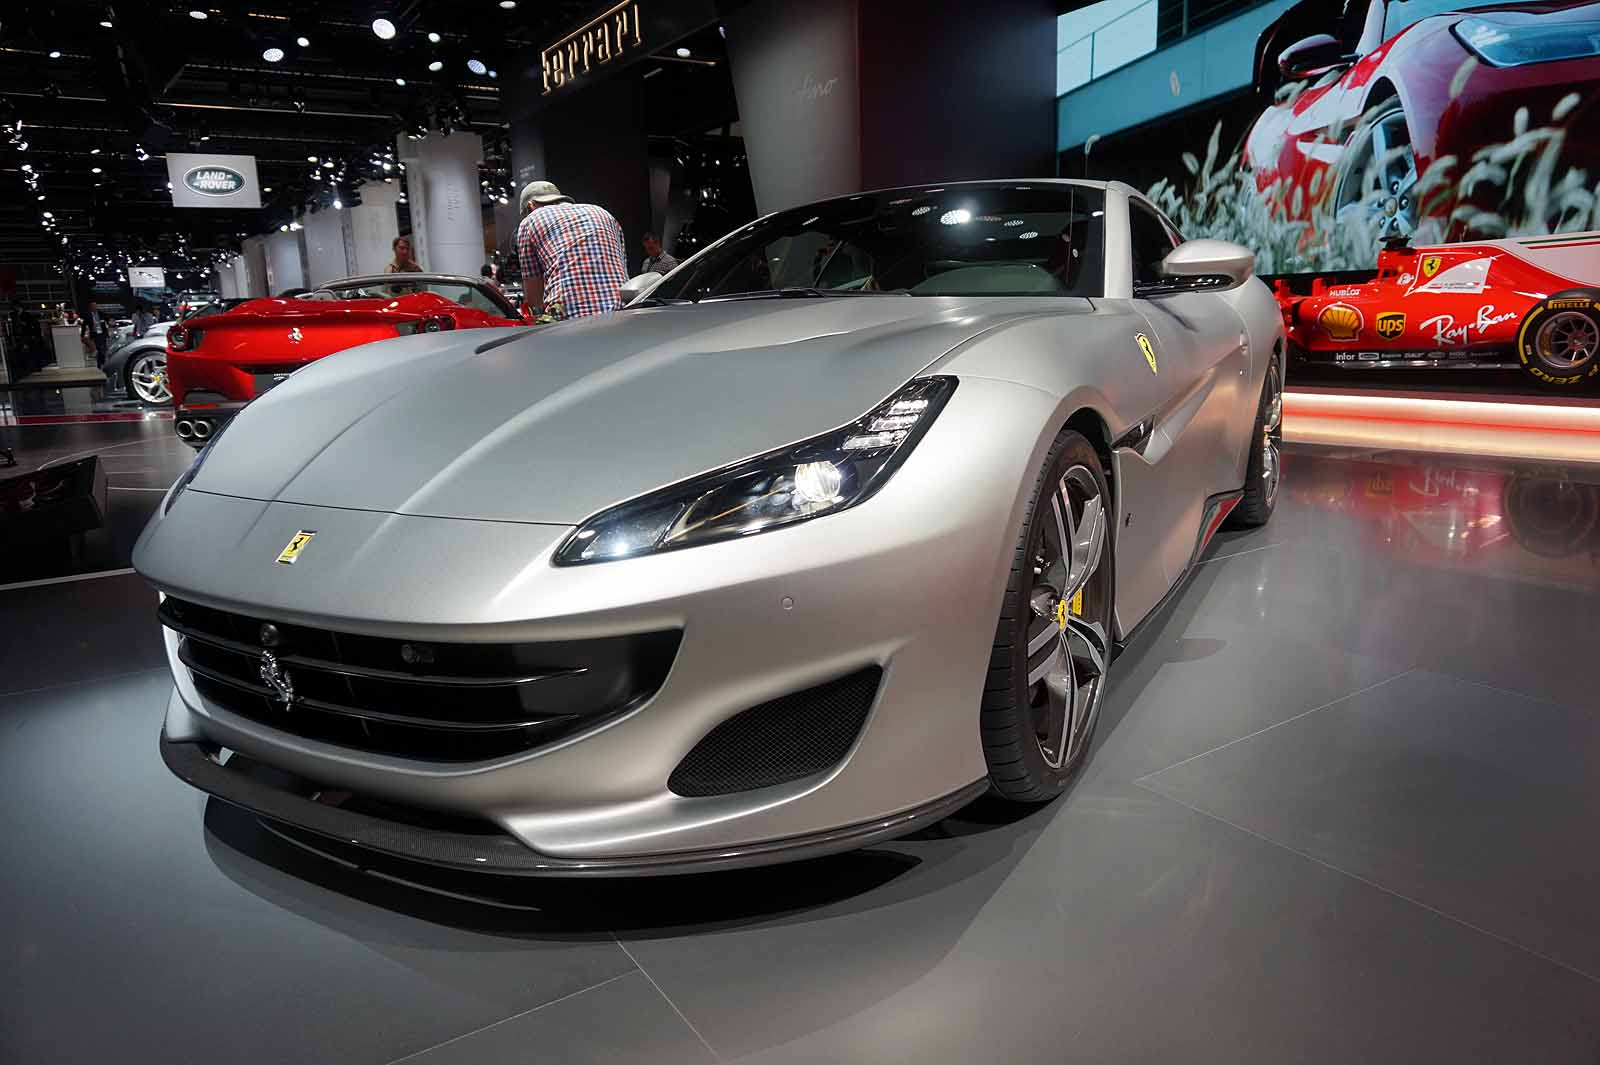 Gallery Entry Level Ferrari Portofino Looks Like Money